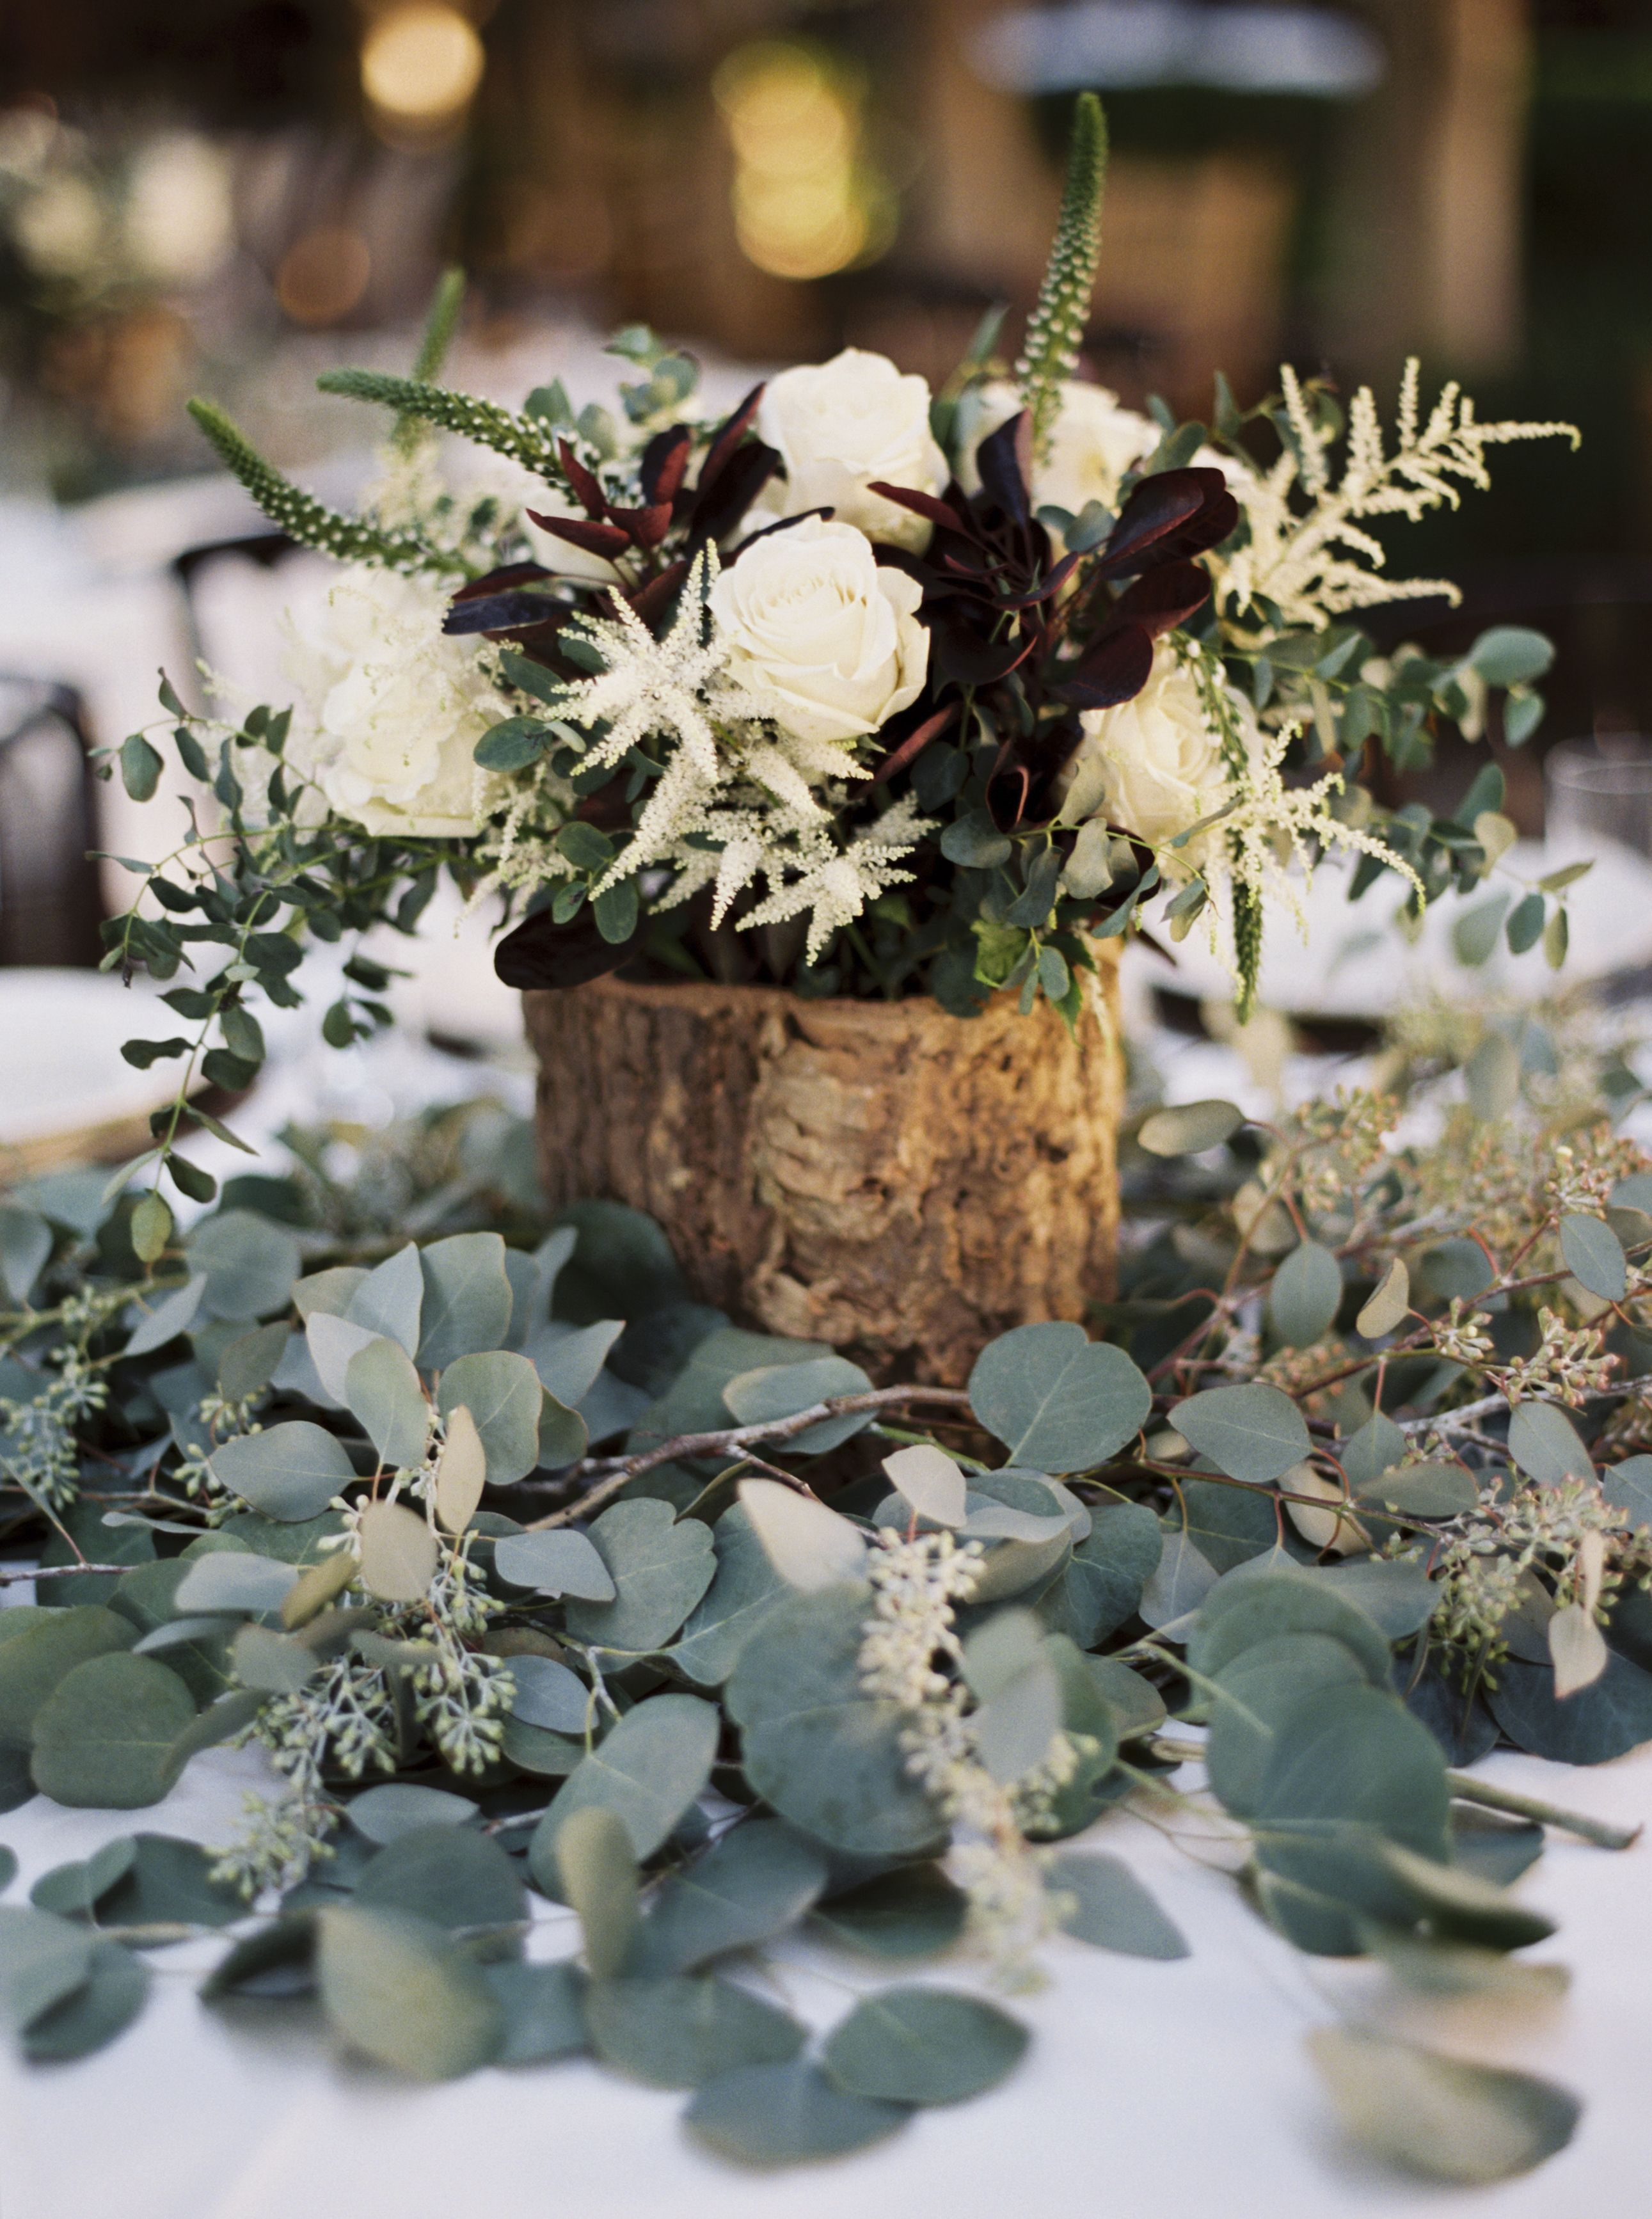 Rustic Wooden Centerpiece On Eucalyptus Leaves Wedding Centerpieces November Wedding Centerpieces Wedding Centerpieces Diy